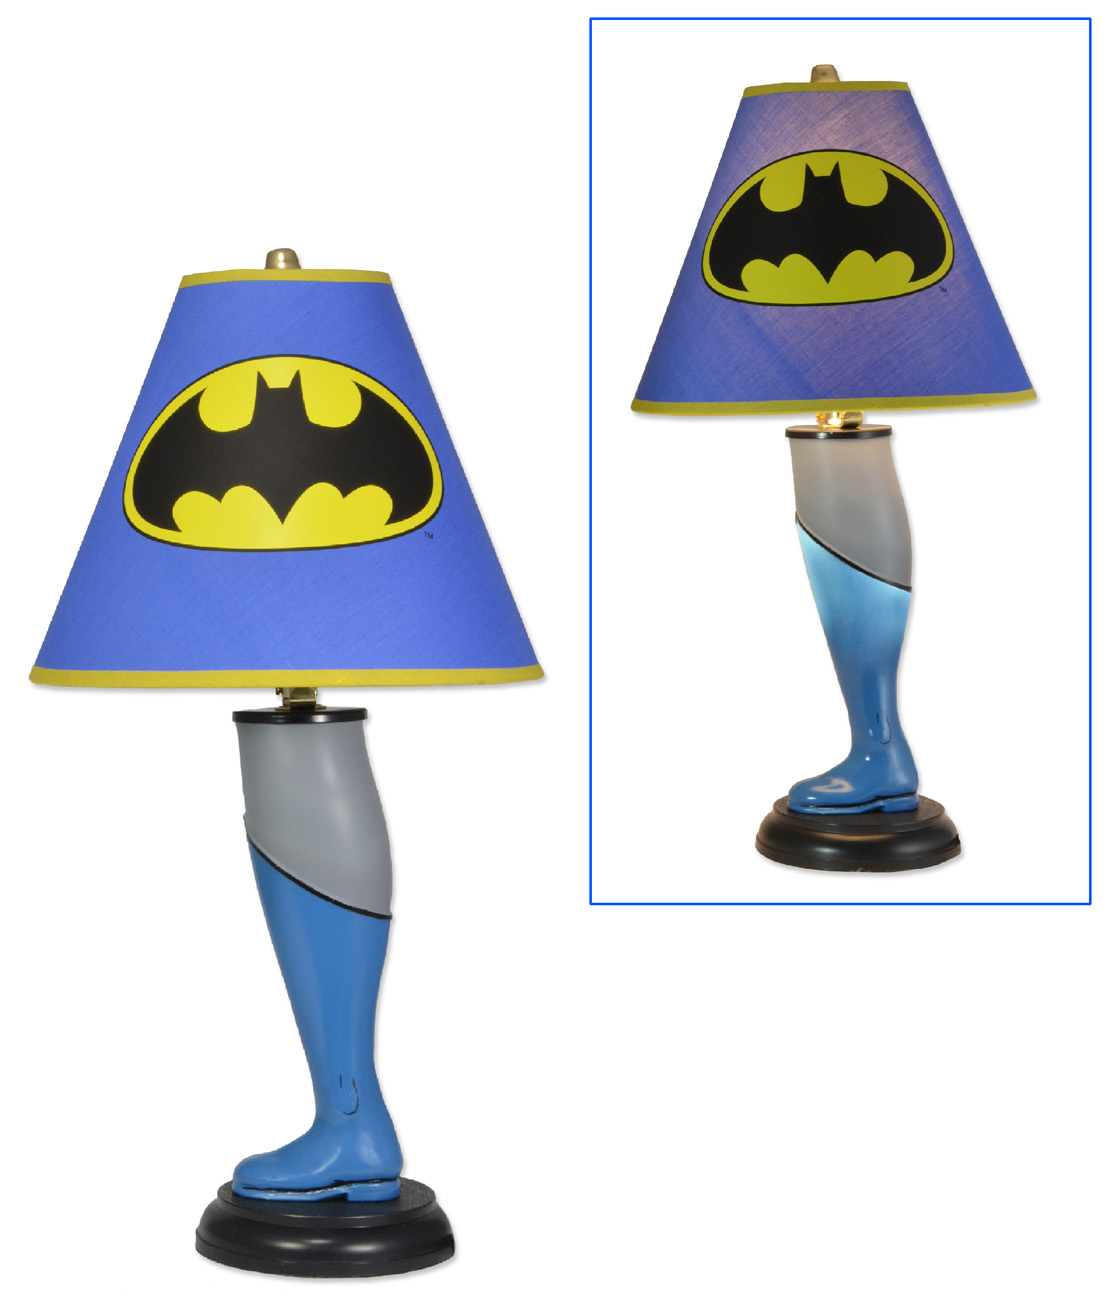 Batman lamps - 25 tips by choosing | Warisan Lighting